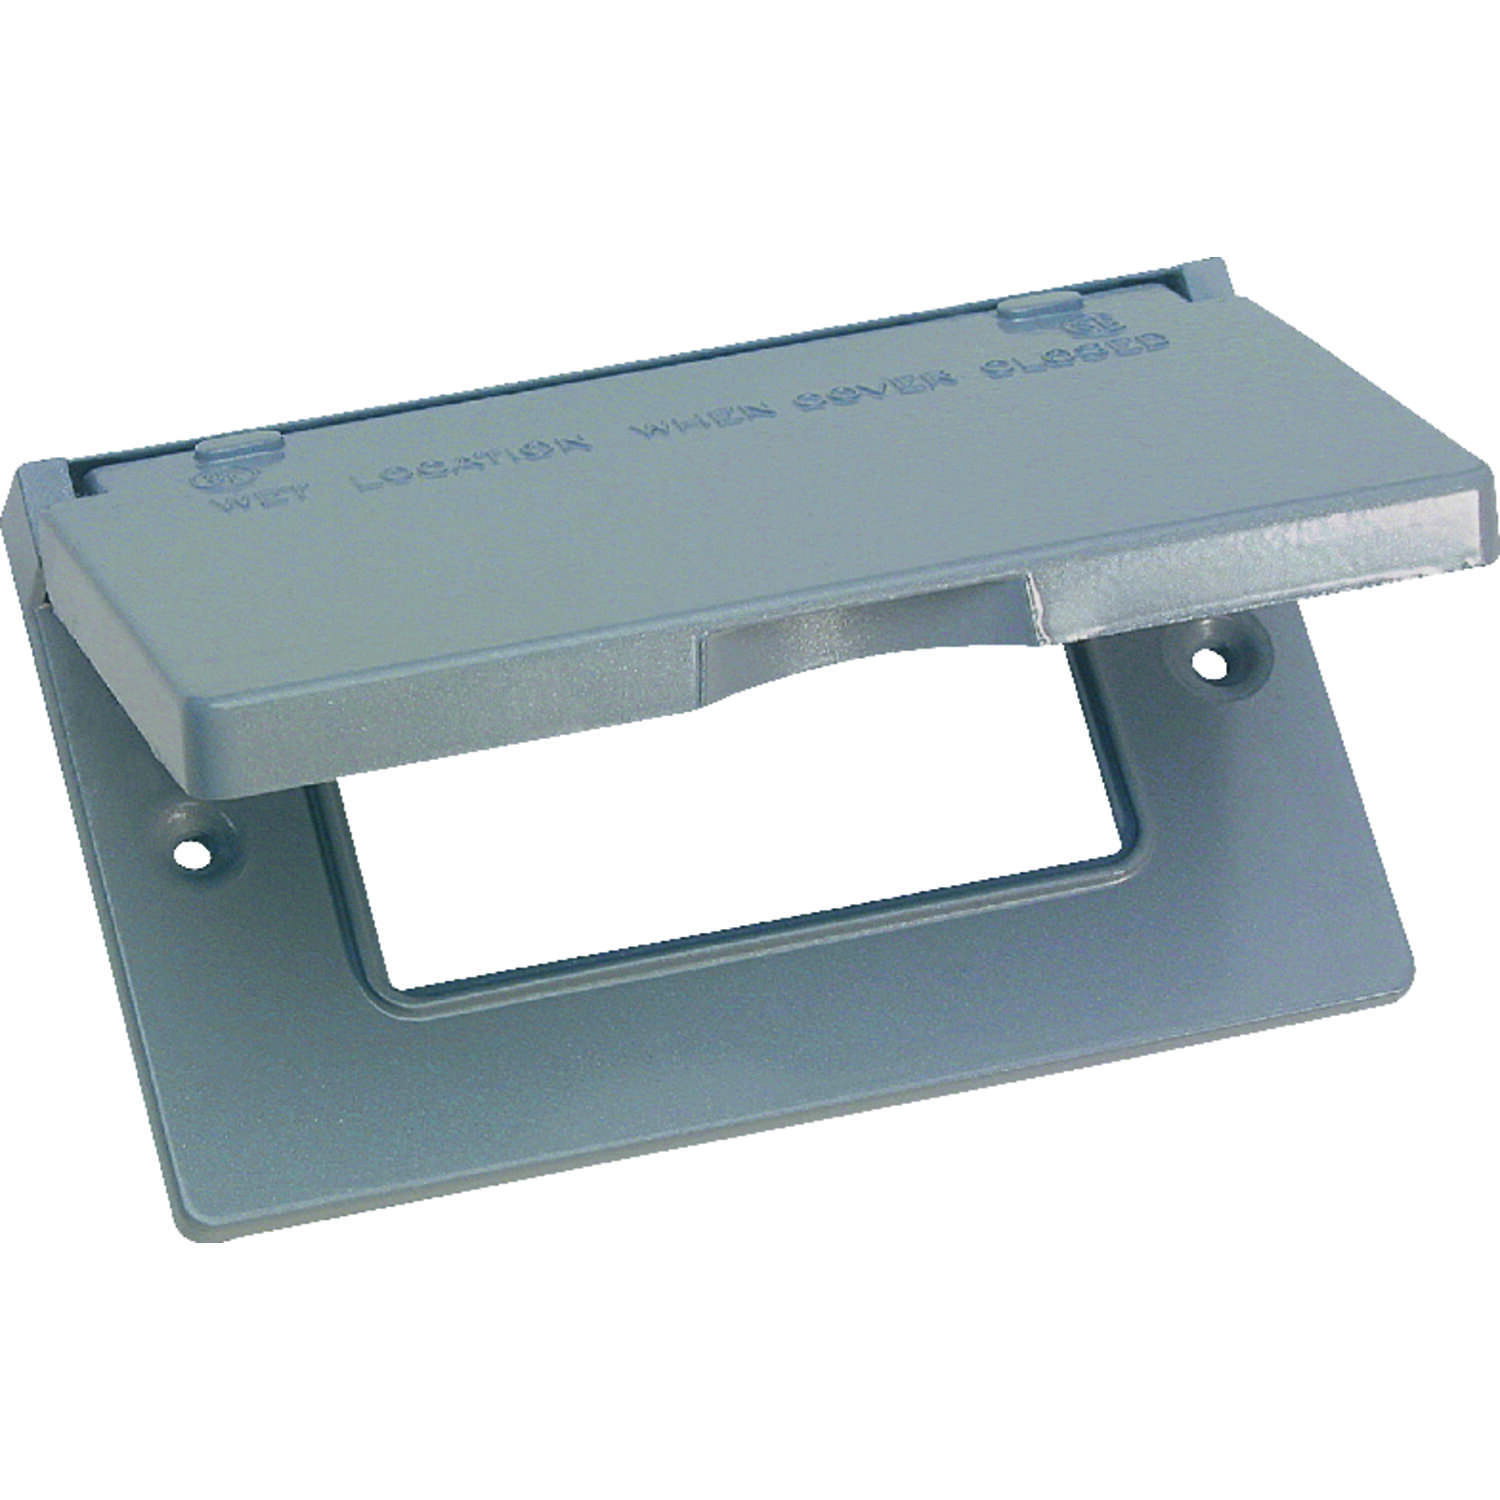 Sigma Electric  Rectangle  Metal  1 gang Horizontal GFCI Cover  For Wet Locations